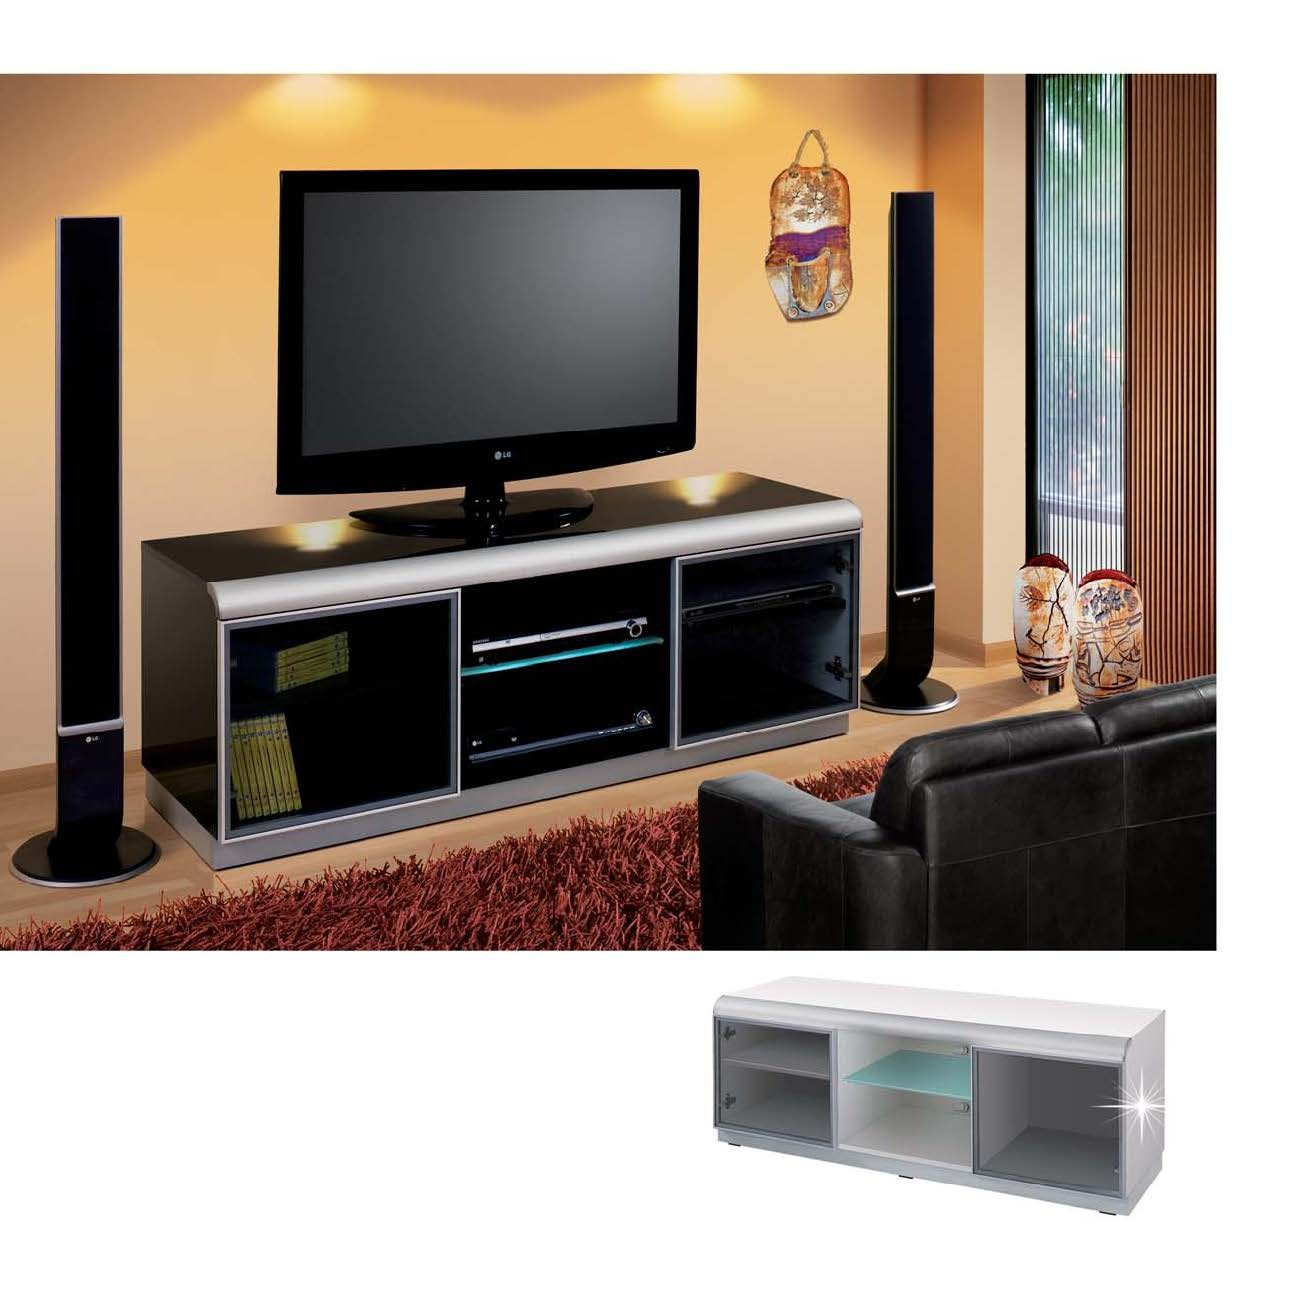 Meuble tv hubertus denver noir audiovisuel solution for Meuble tv deco